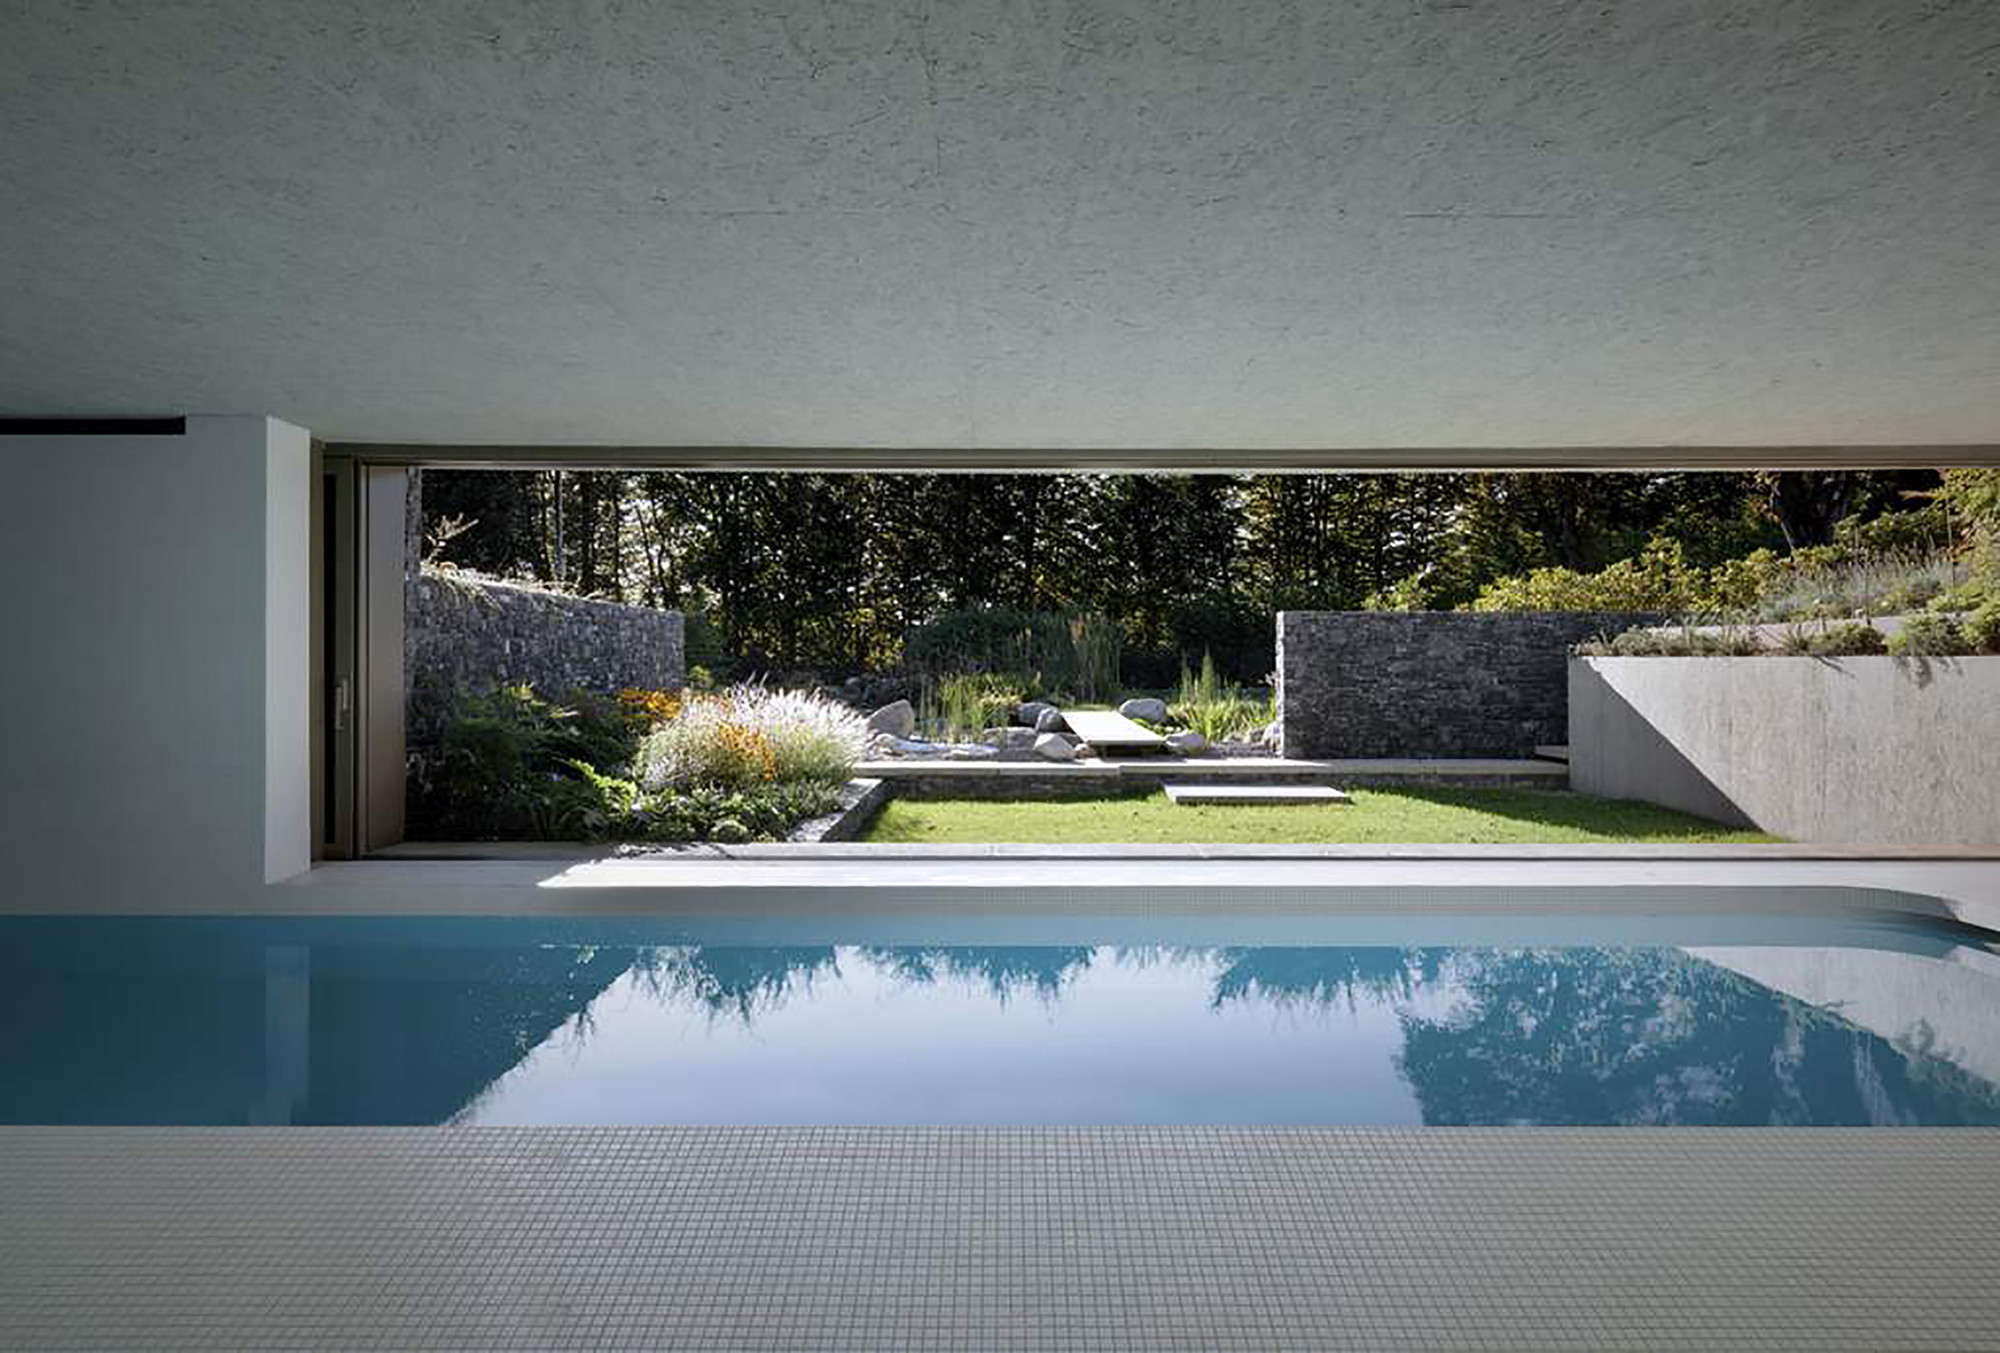 Piscina Design La Piscina Del Roccolo Is A Stunning Luxury Indoor Swimming Pool